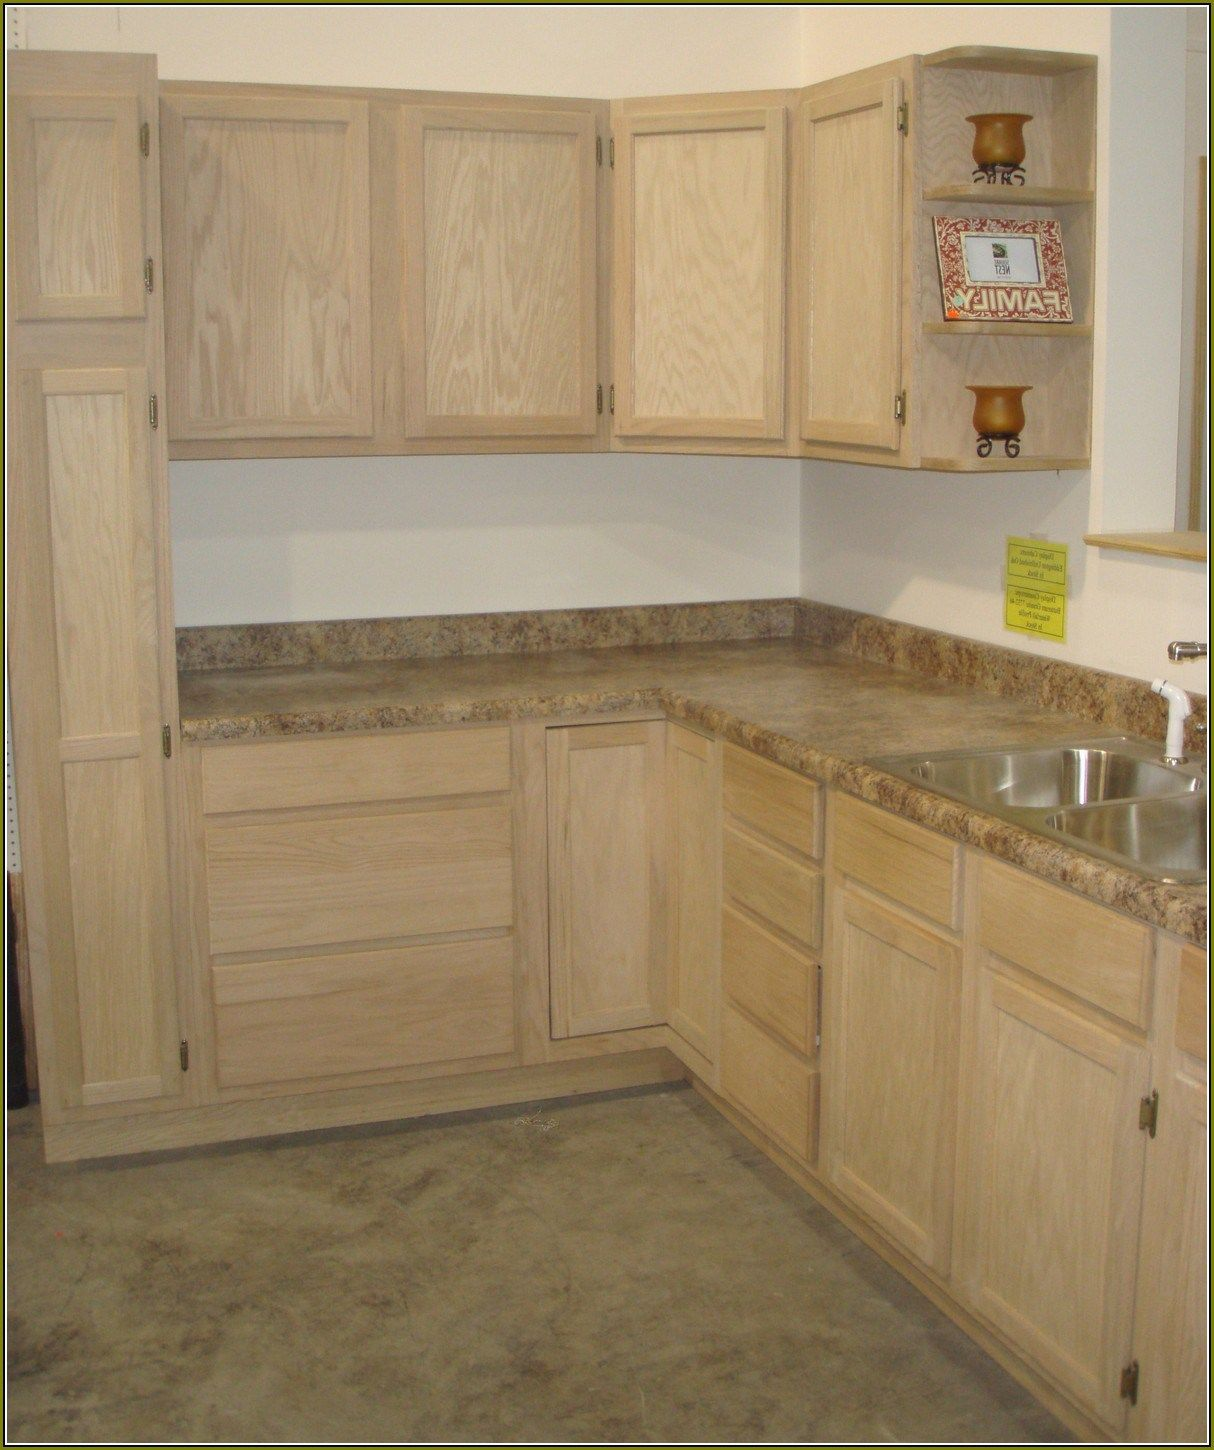 home depot kitchen cabinets home improvements refference unfinished pine cabinets home depot kitchen cabinets assemble home depot lowes kitchen cabinets